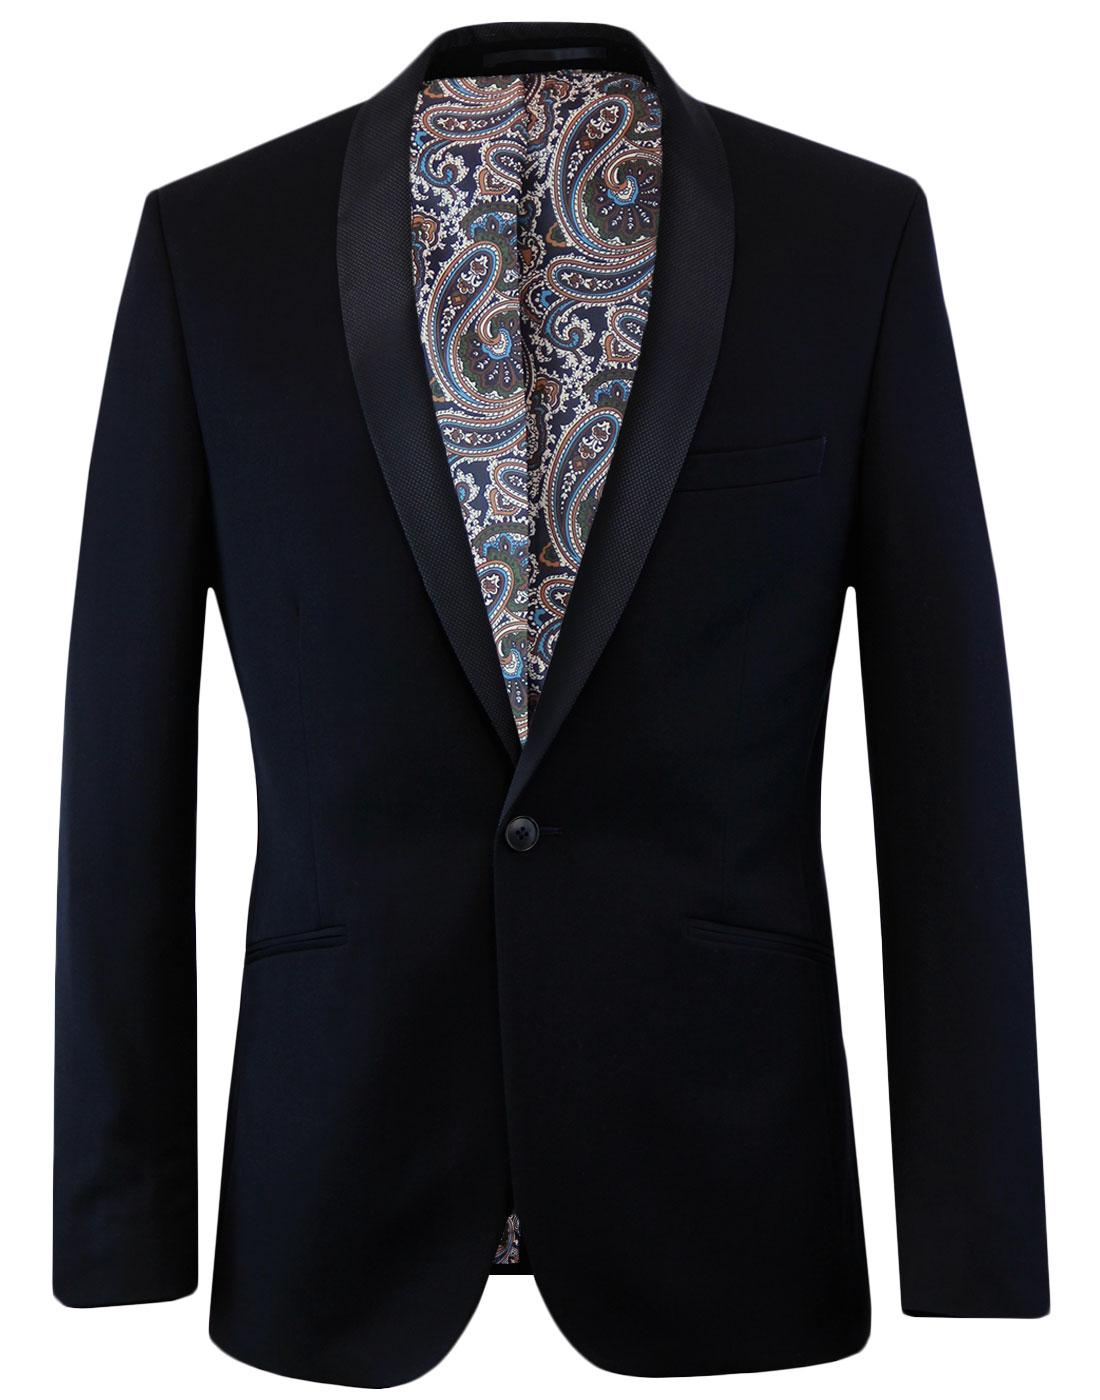 Men's Retro Navy Twill Shawl Collar Dinner Jacket